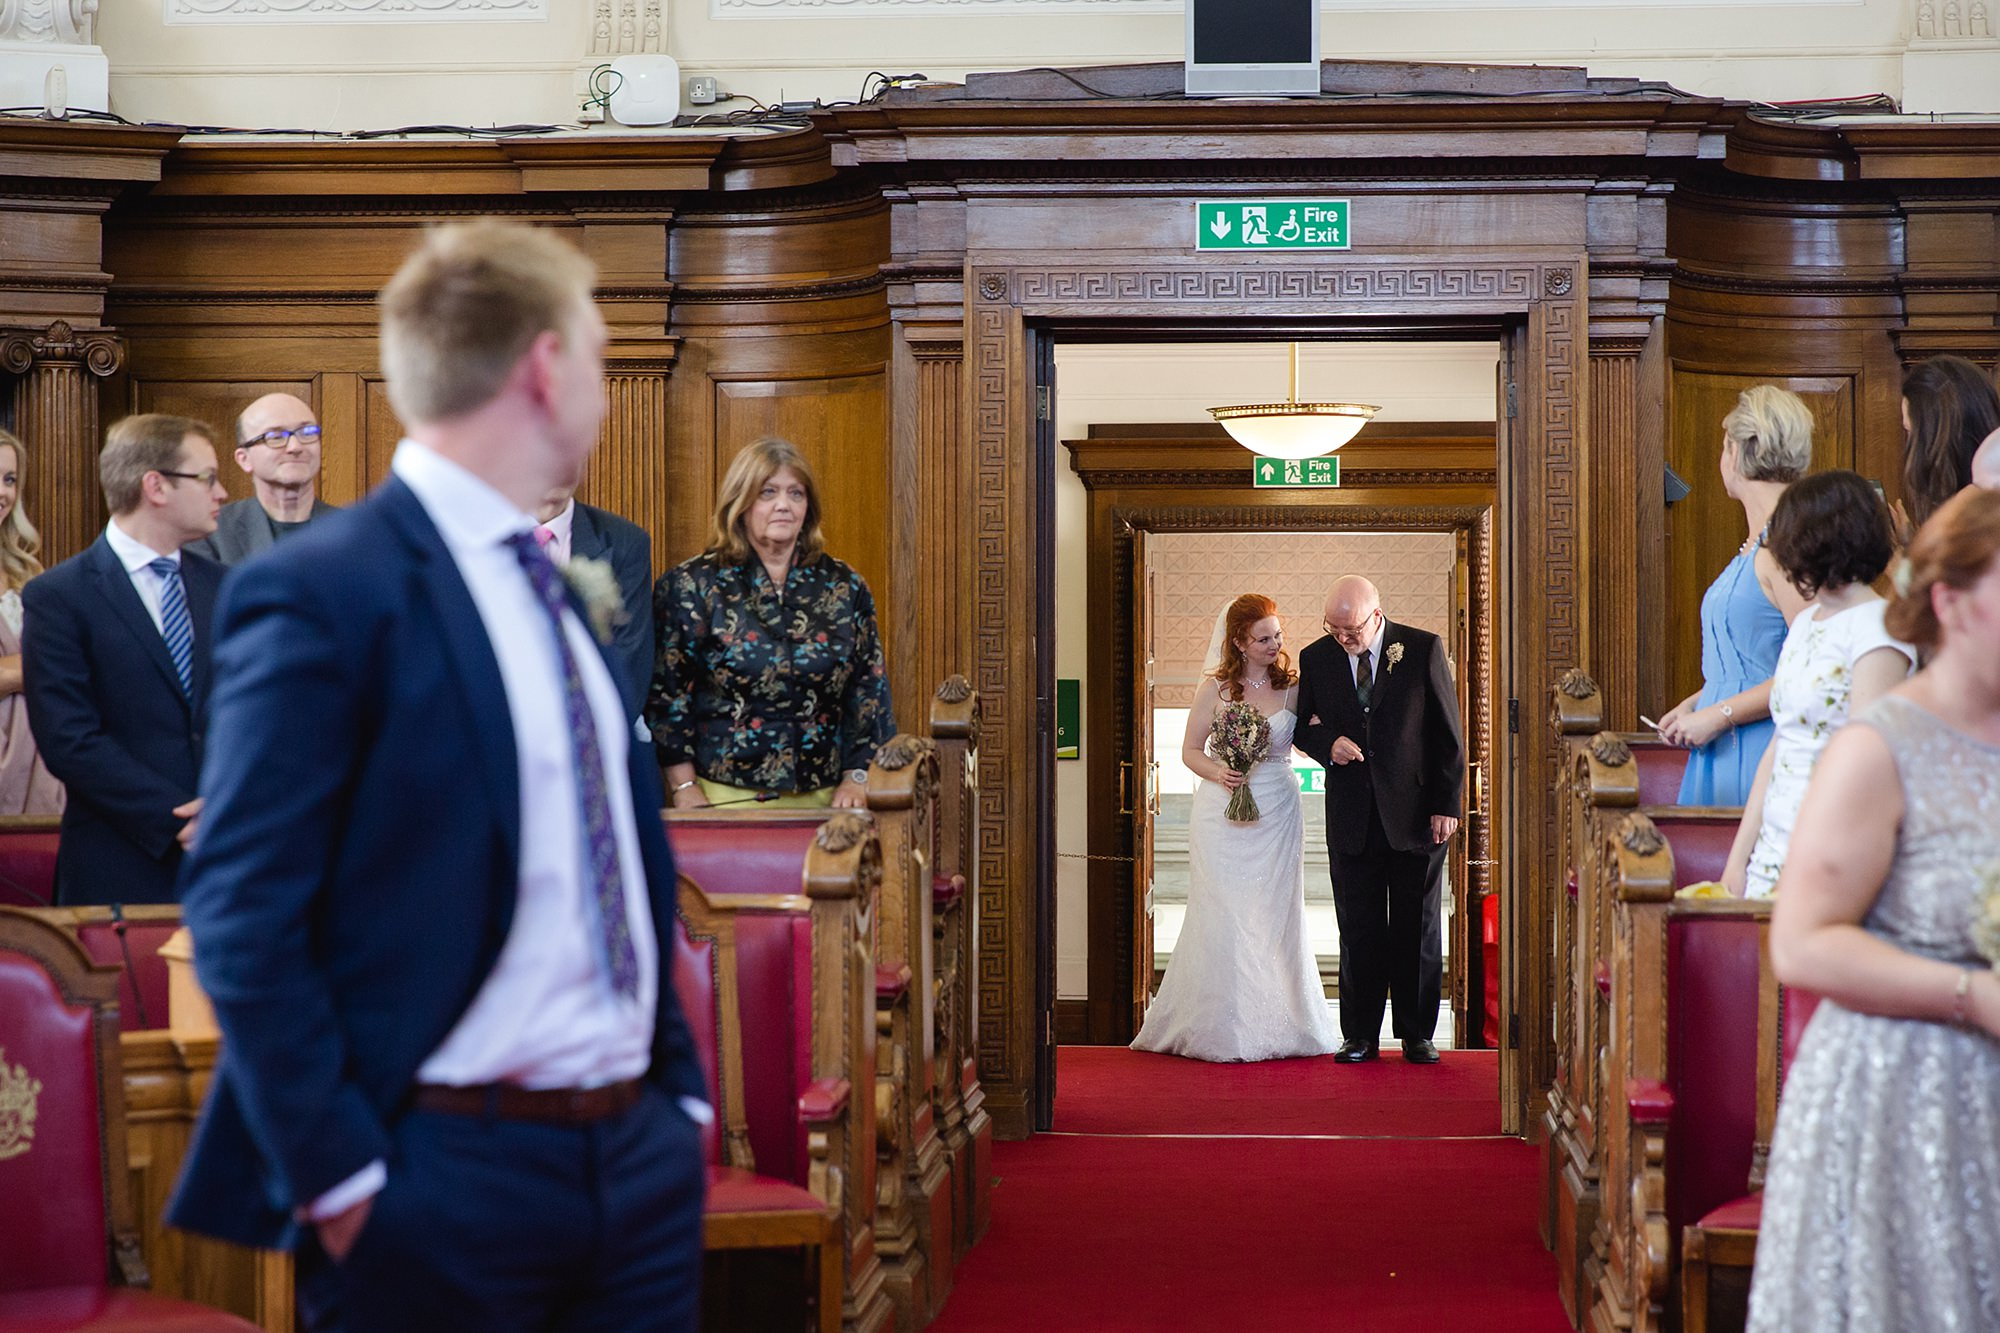 oyster shed wedding bride enters for islington town hall wedding ceremony